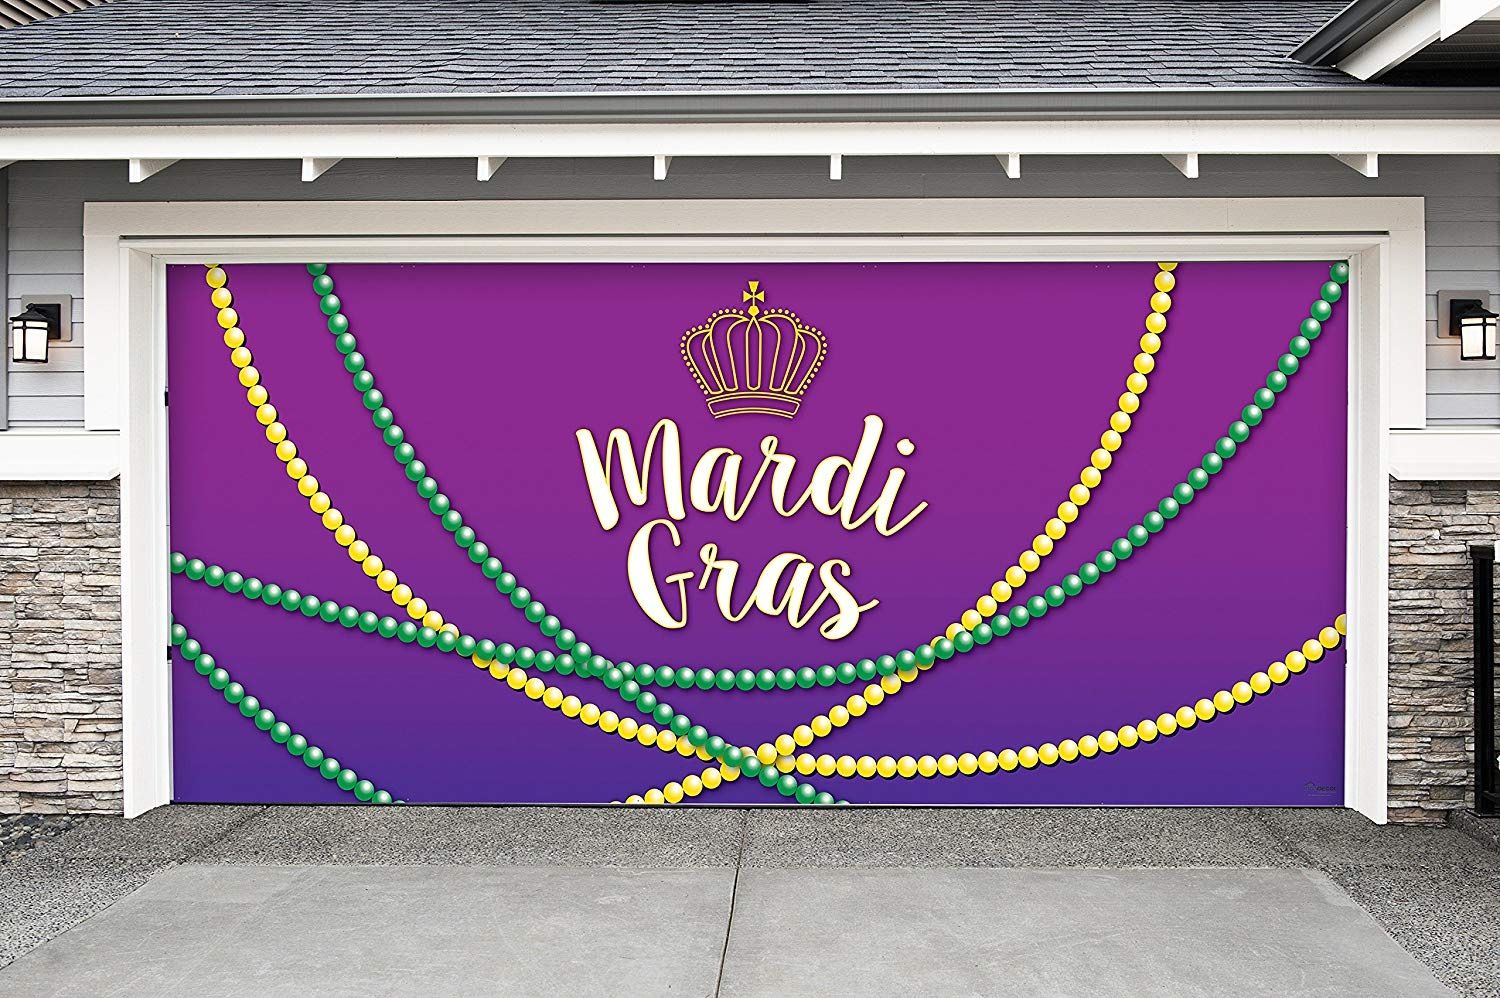 Victory Corps Outdoor Mardi Gras Decorations Garage Door Banner Cover Mural Décoration 7'x16' - Mardi Gras Beads - The Original Mardi Gras Supplies Holiday Garage Door Banner Decor